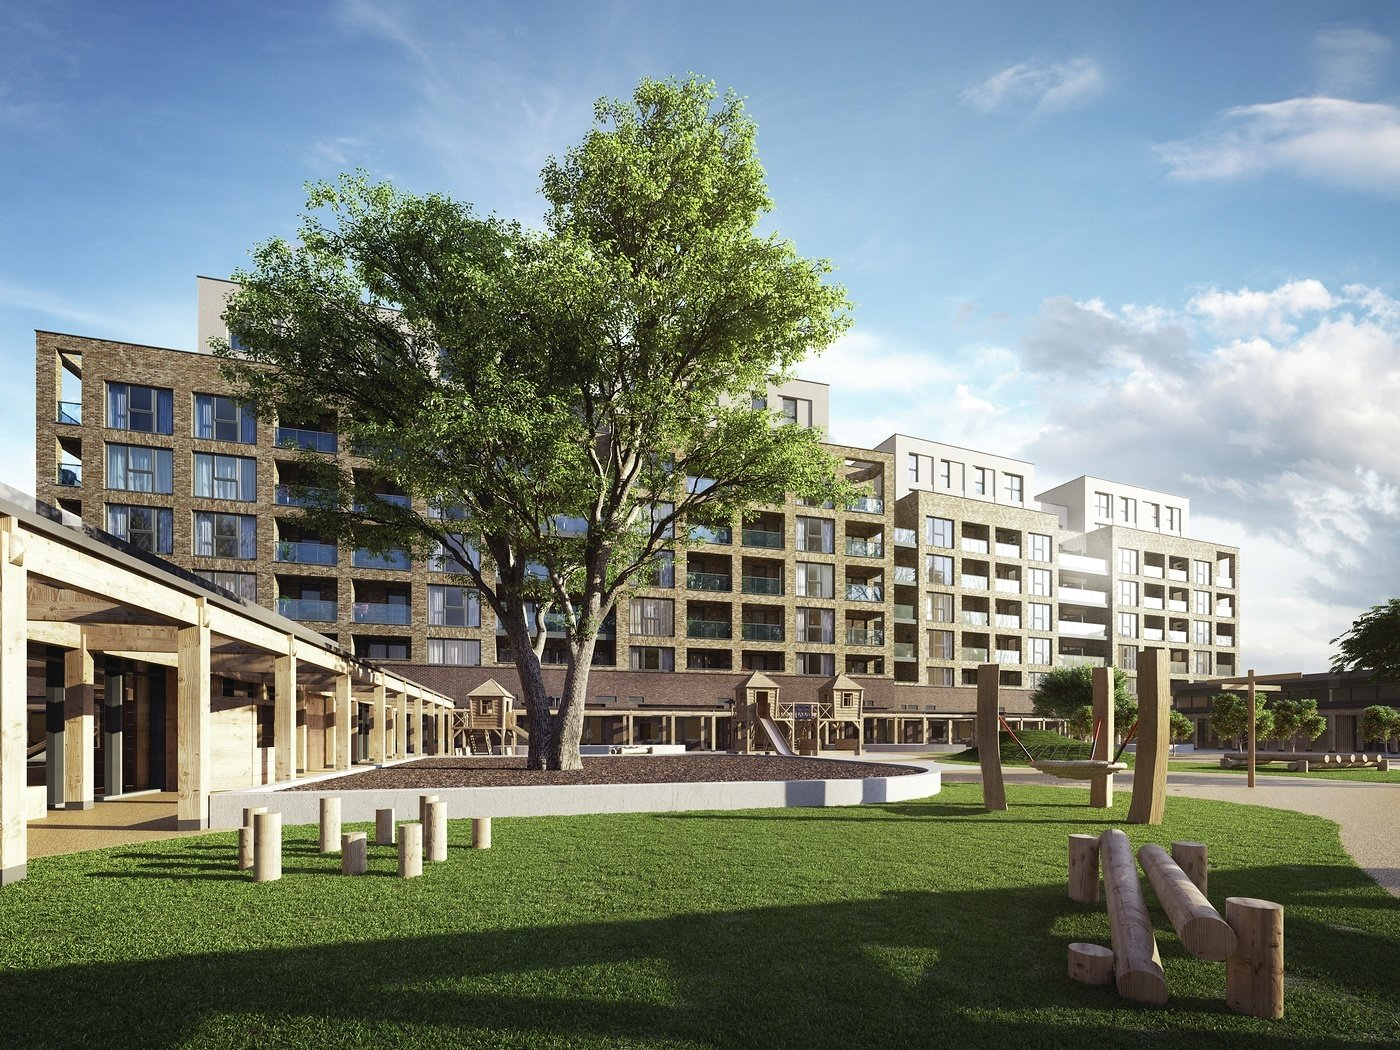 CBRE announces plans to acquire Telford Homes